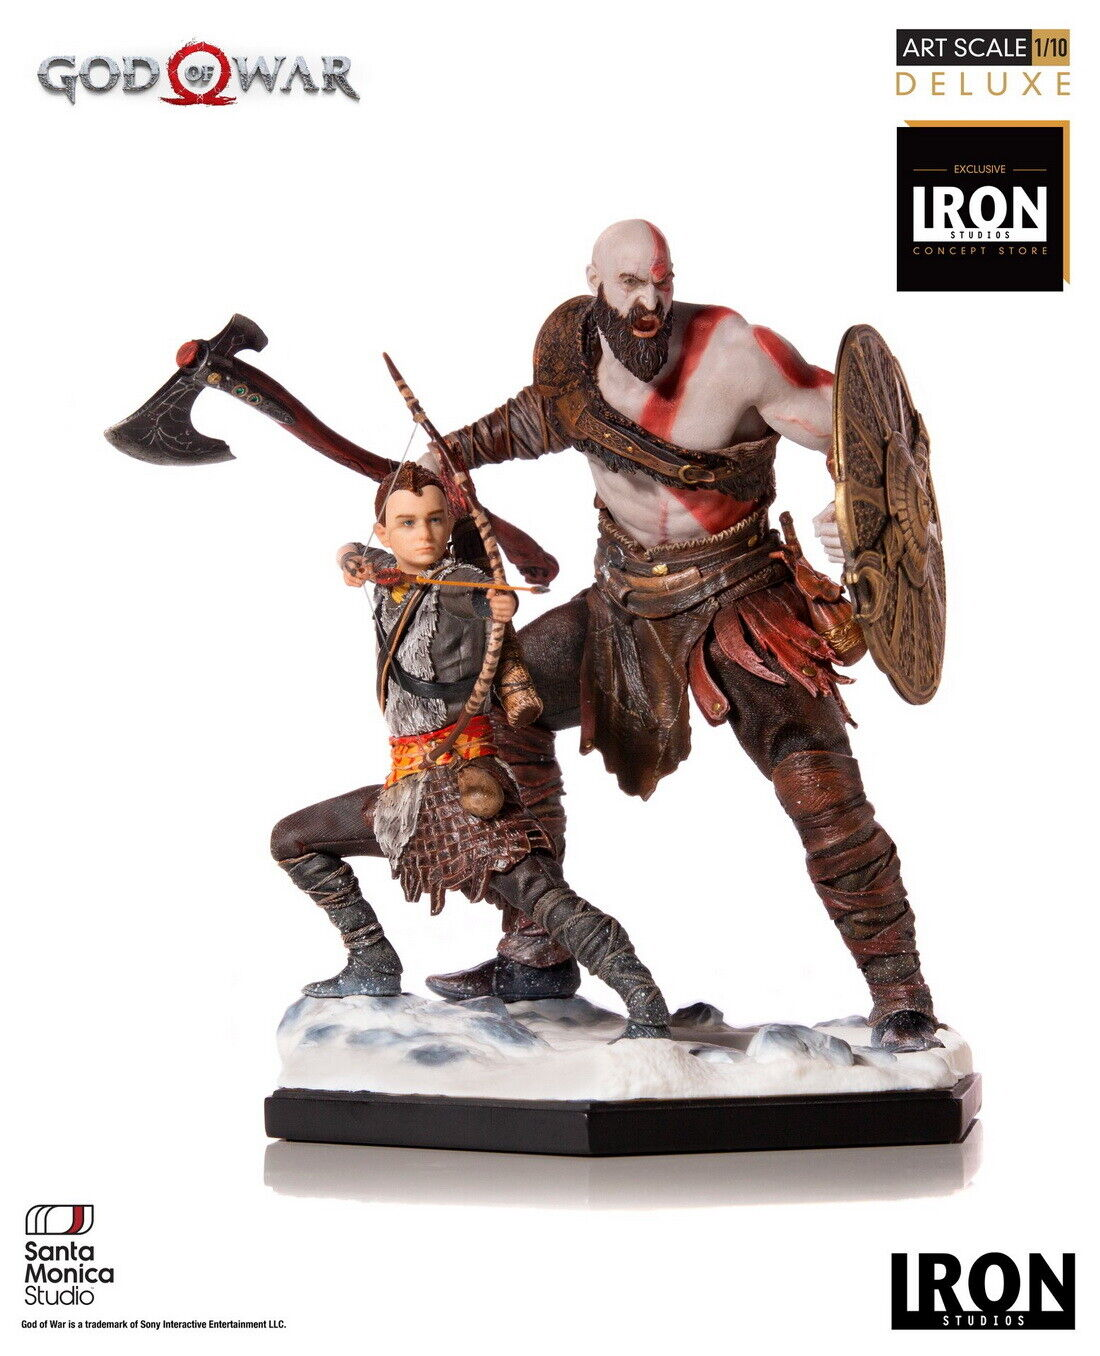 Iron Studios God of War 4 Kratos and Atreus Deluxe Art Scale 1/10 Statue on eBay thumbnail